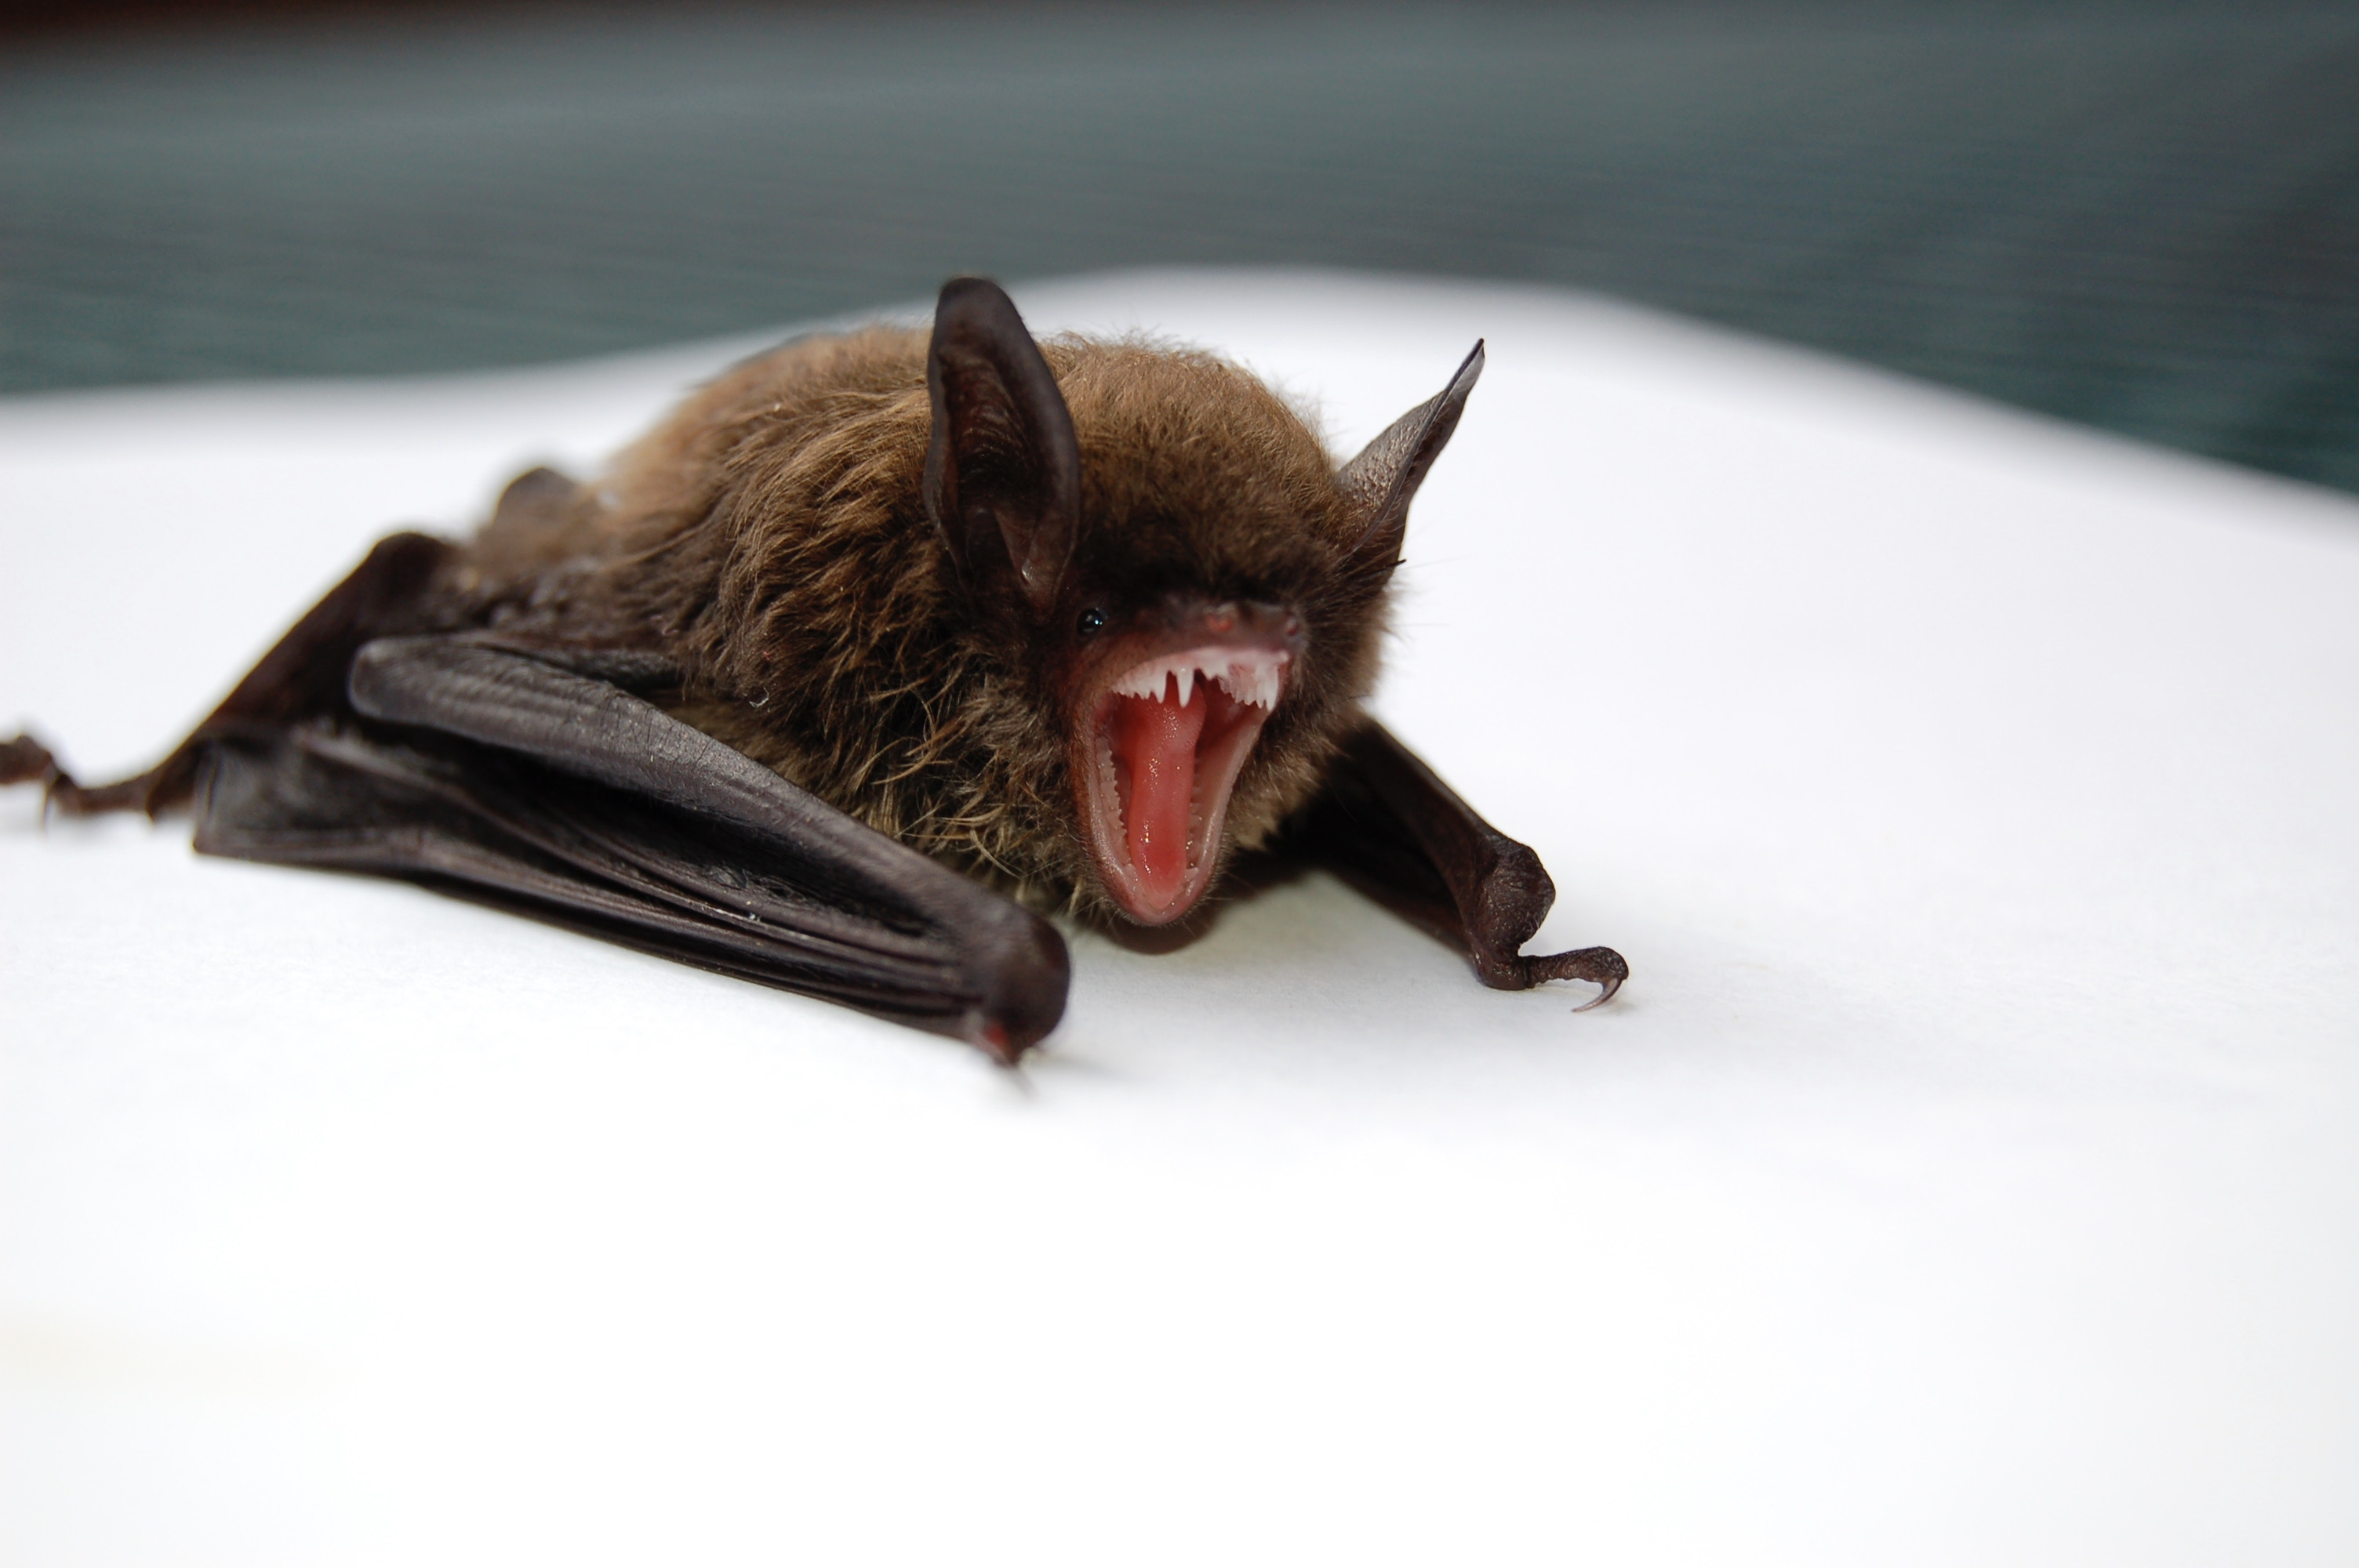 A small fuzzy brown vampire bat sits on a white table.